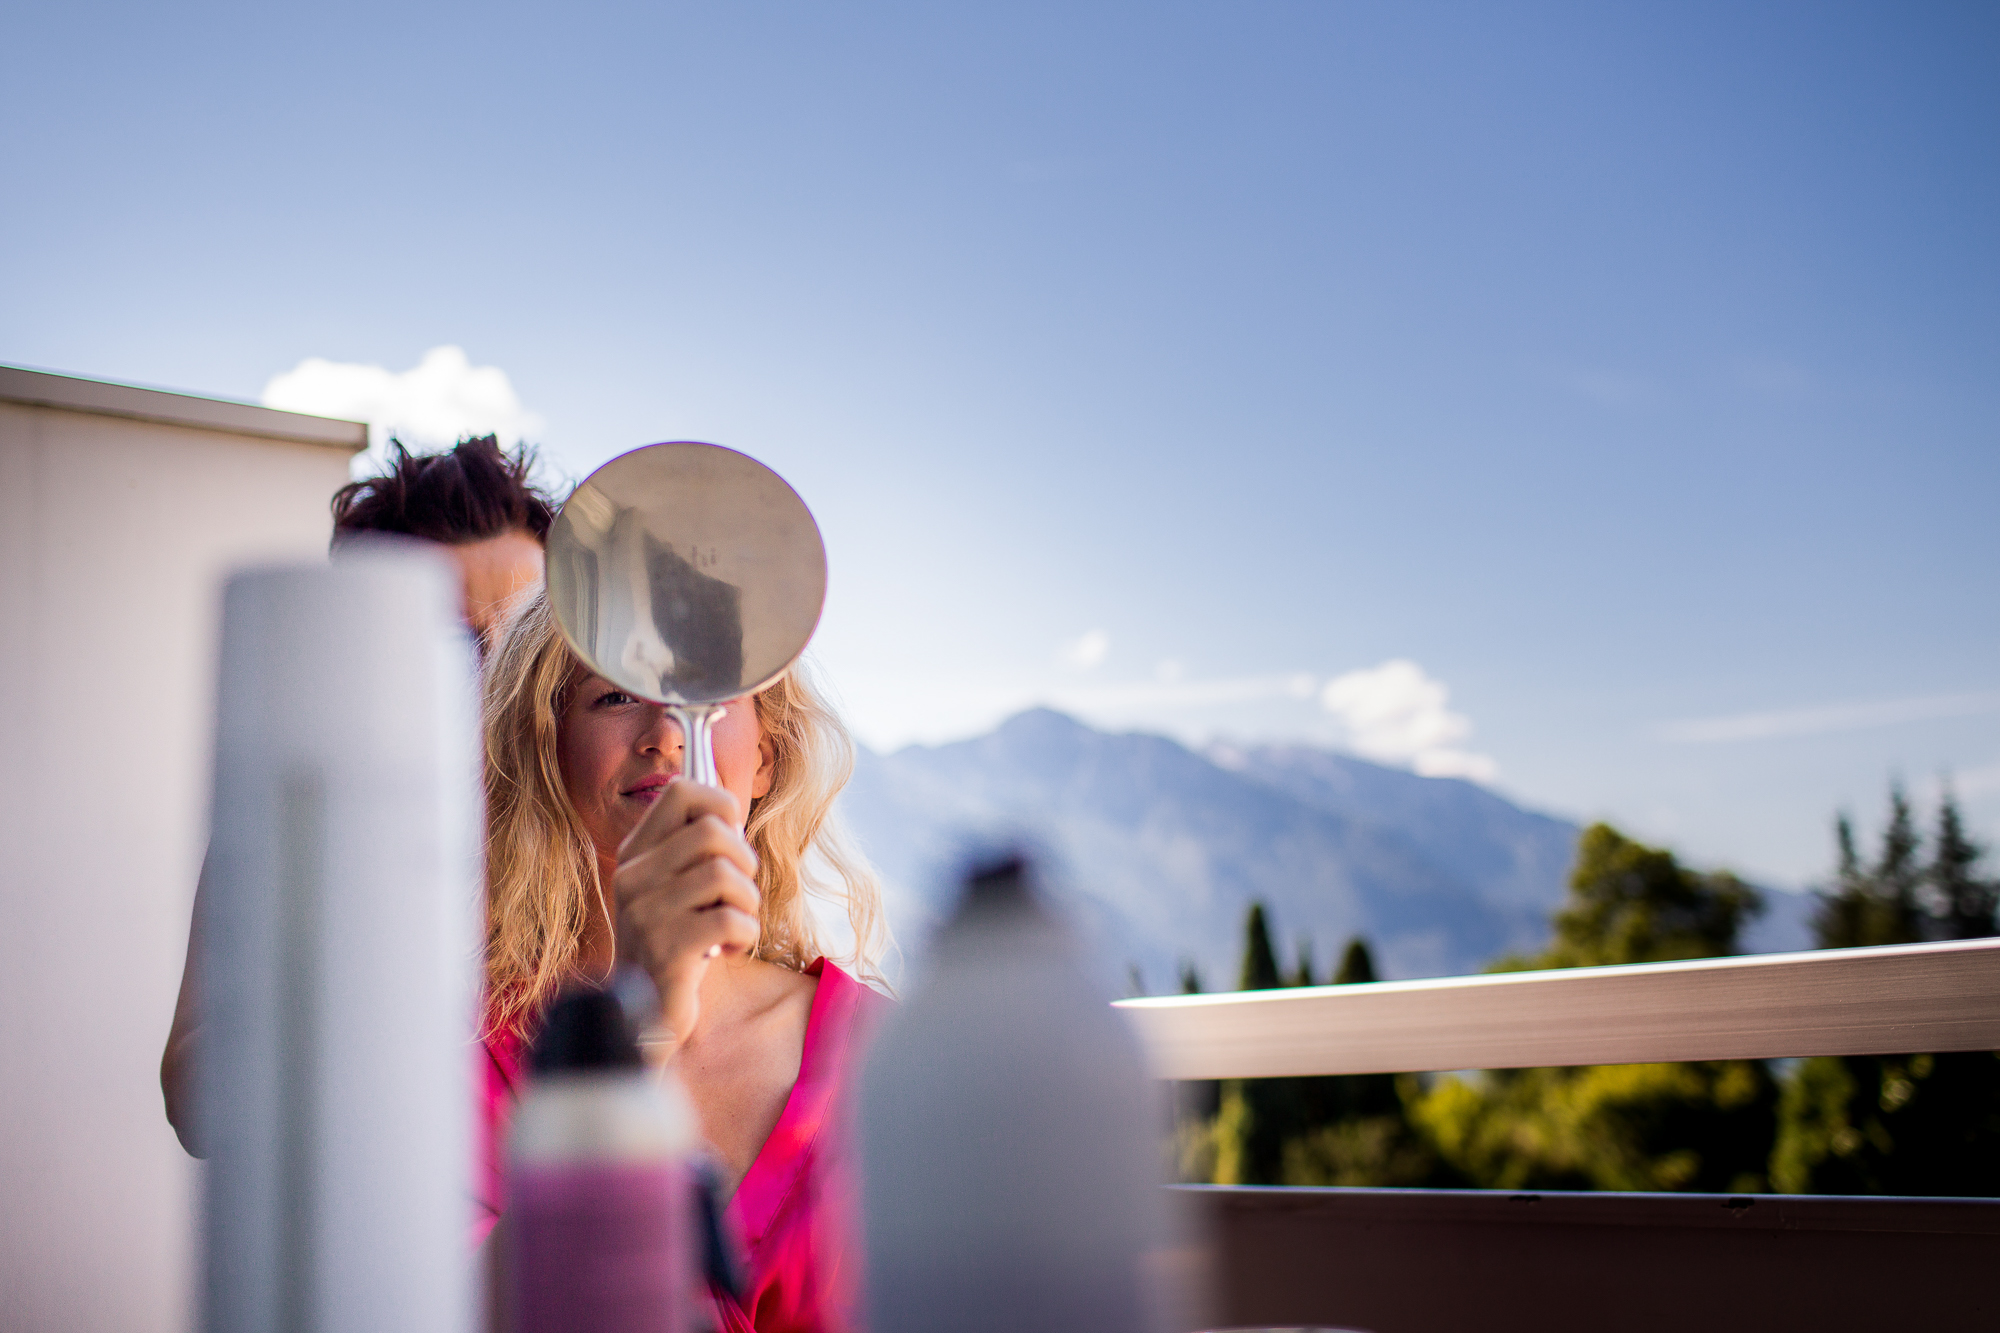 Bride getting ready, hair and make up, hochsteckfrisur, brautfrisur, spiegel, mountain view